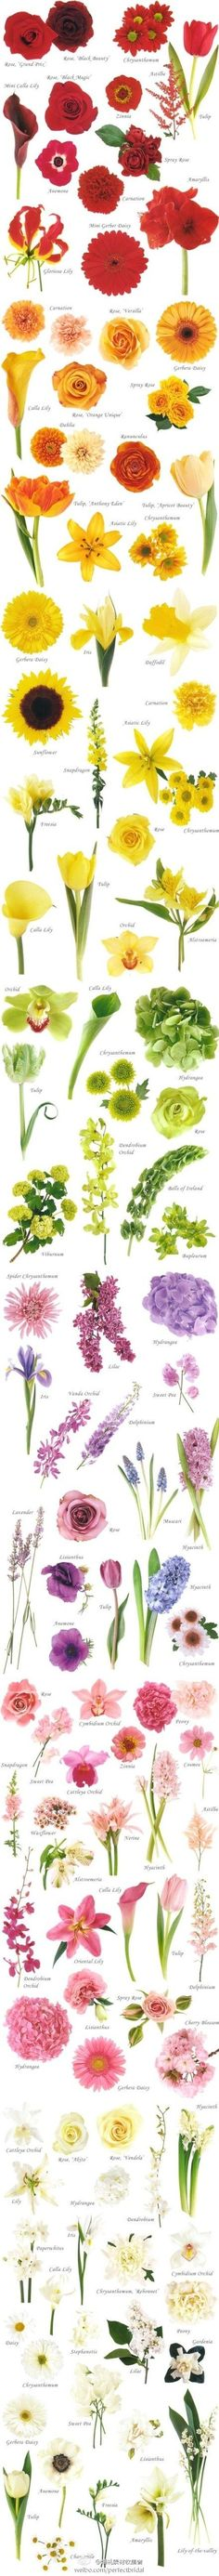 Flower Chart. You'll